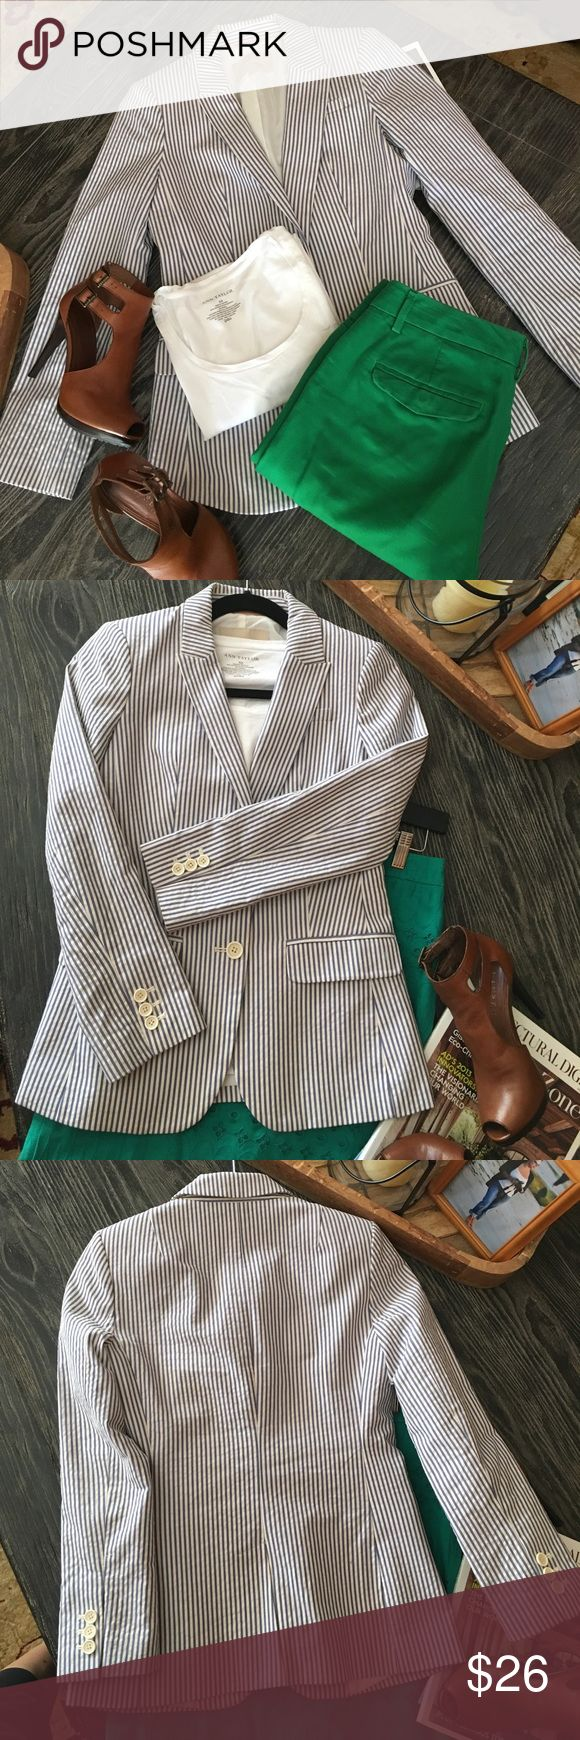 Banana Republic seersucker blazer In new condition BR seersucker blazer.  Great for summer time.  Can be dressed up for the office or dressed down. Banana Republic Jackets & Coats Blazers